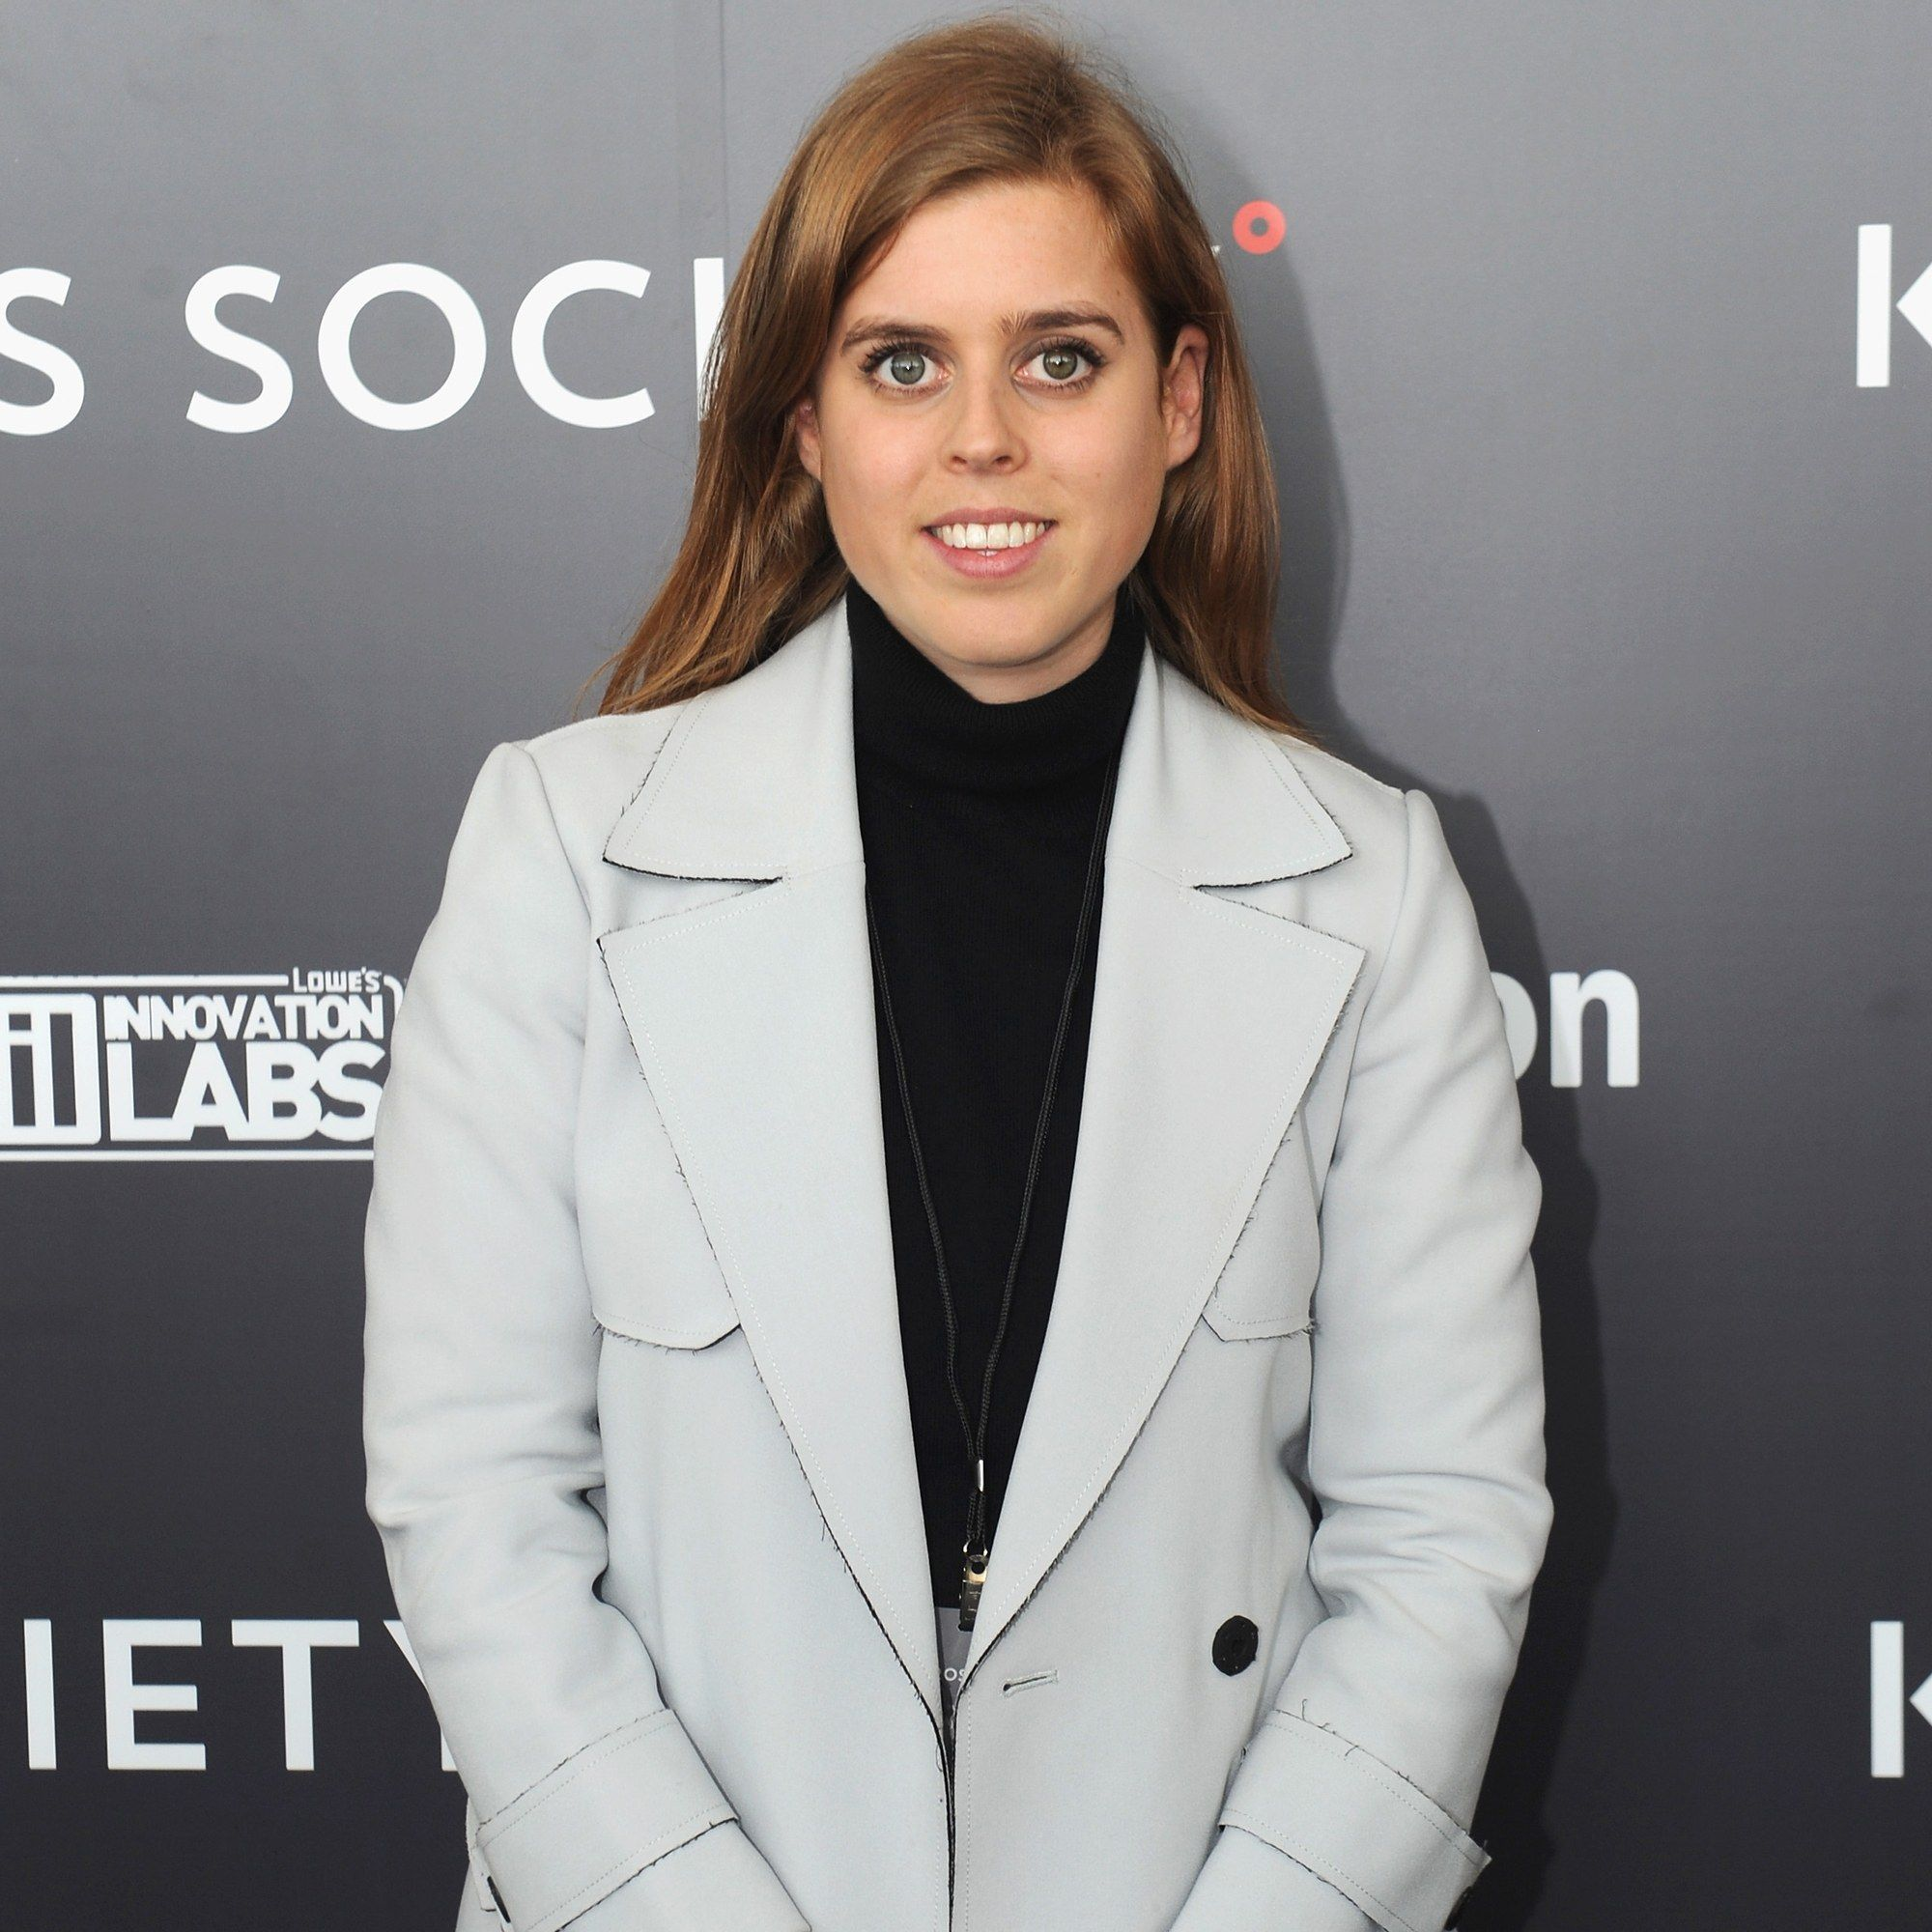 Princess Beatrice on Entrepreneurship, Education, and